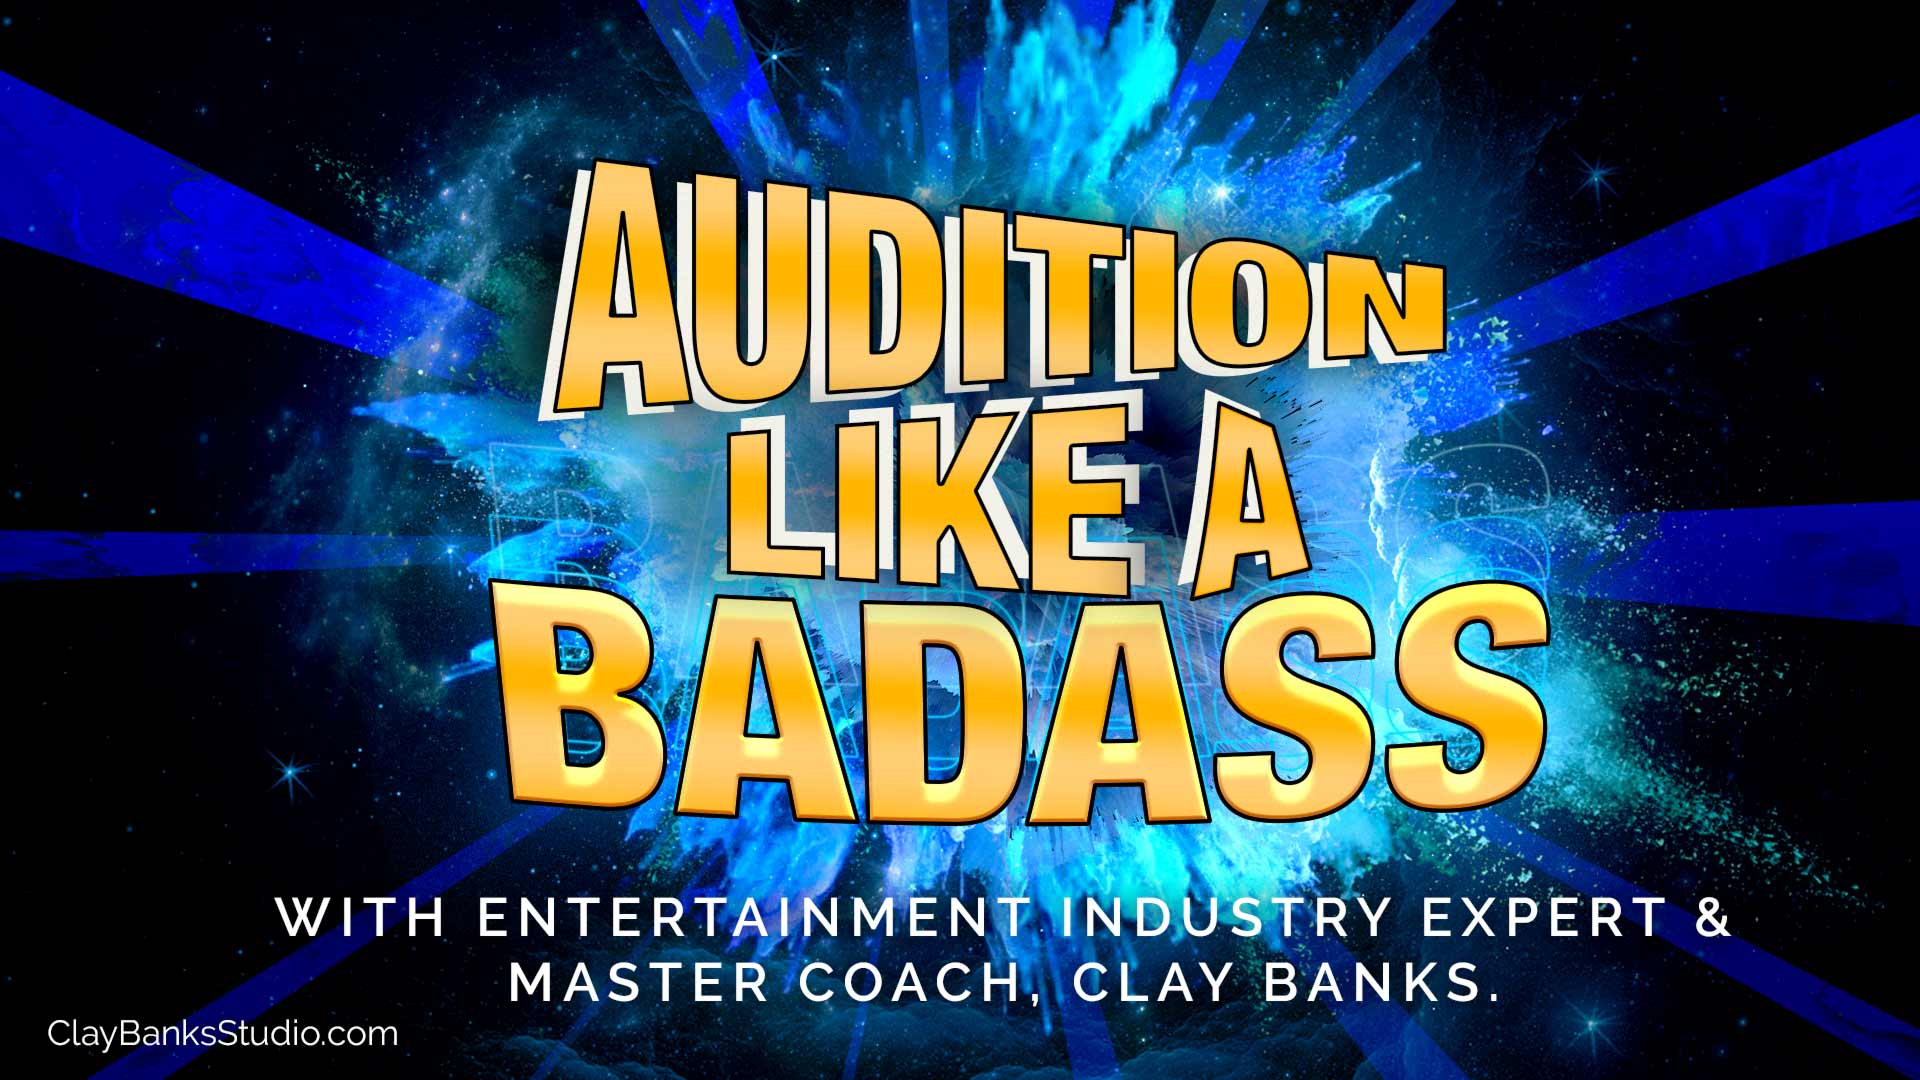 Audition like a badass graphic